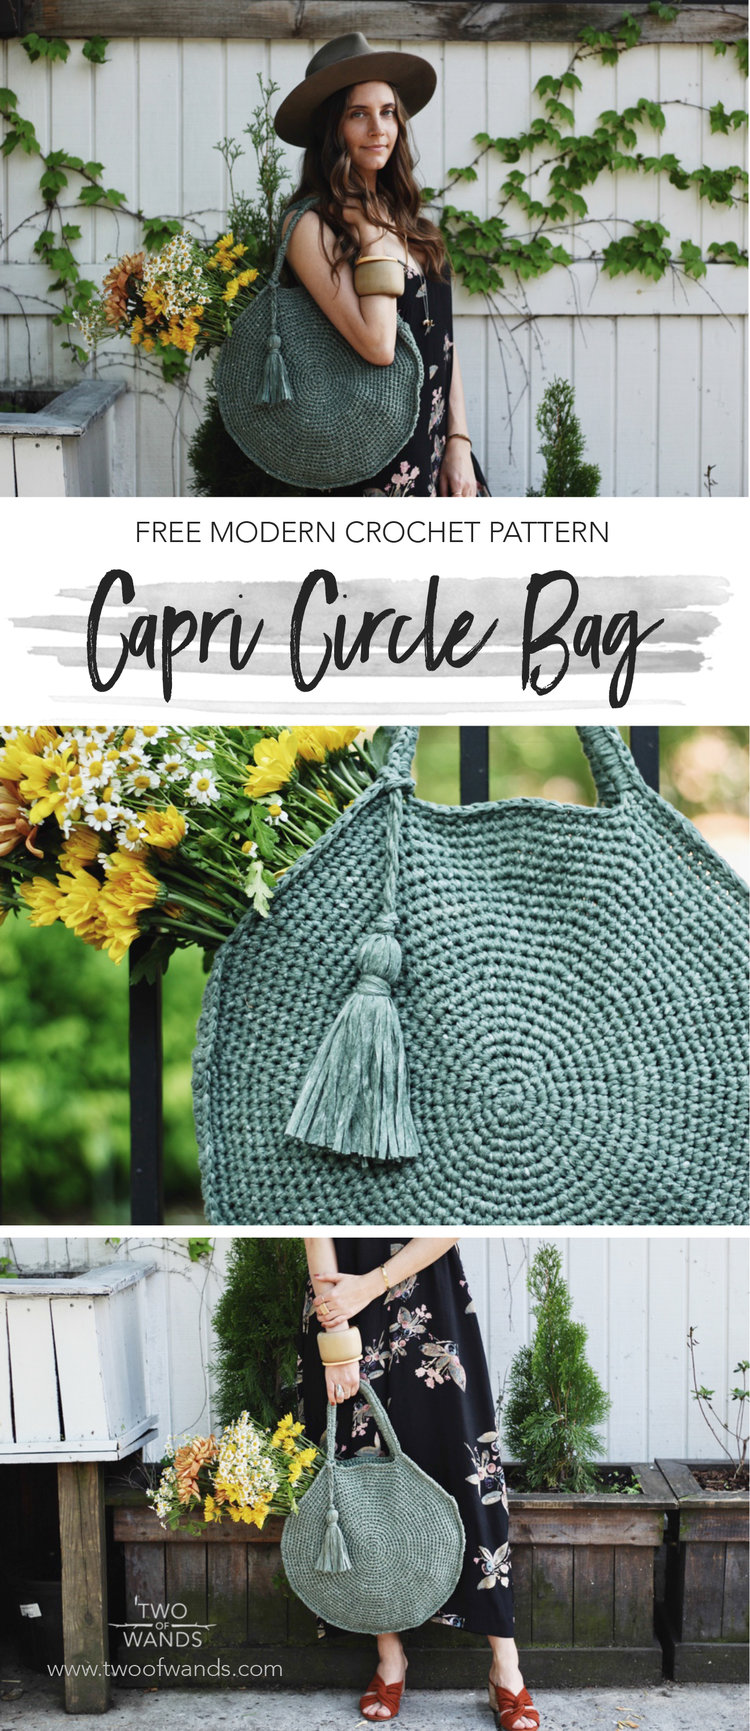 Capri+Circle+Bag+pattern+by+Two+of+Wands